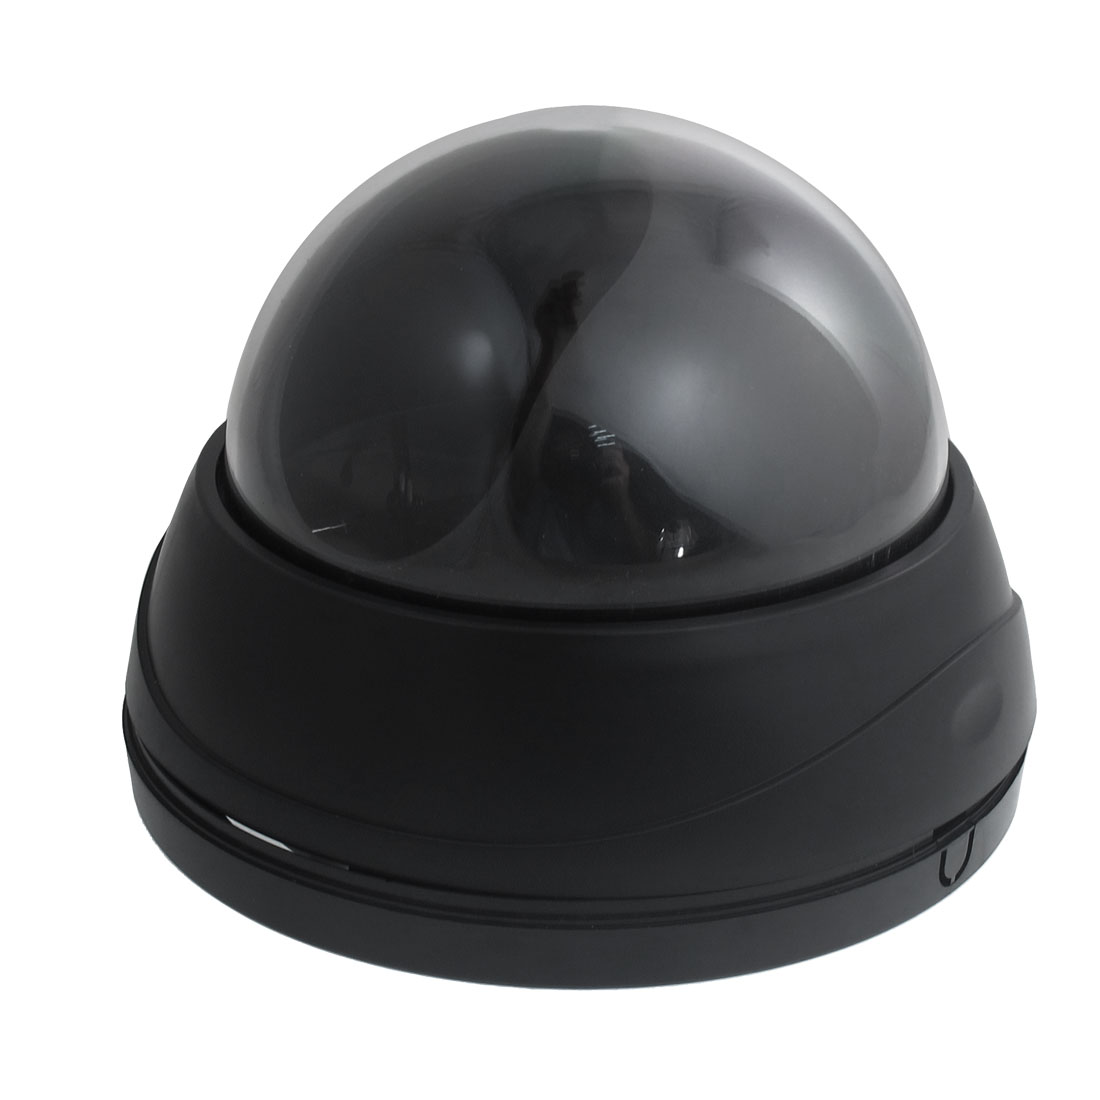 "4"" High Black Plastic Surveillance Housing Shell Case for CCD CCTV Camera"